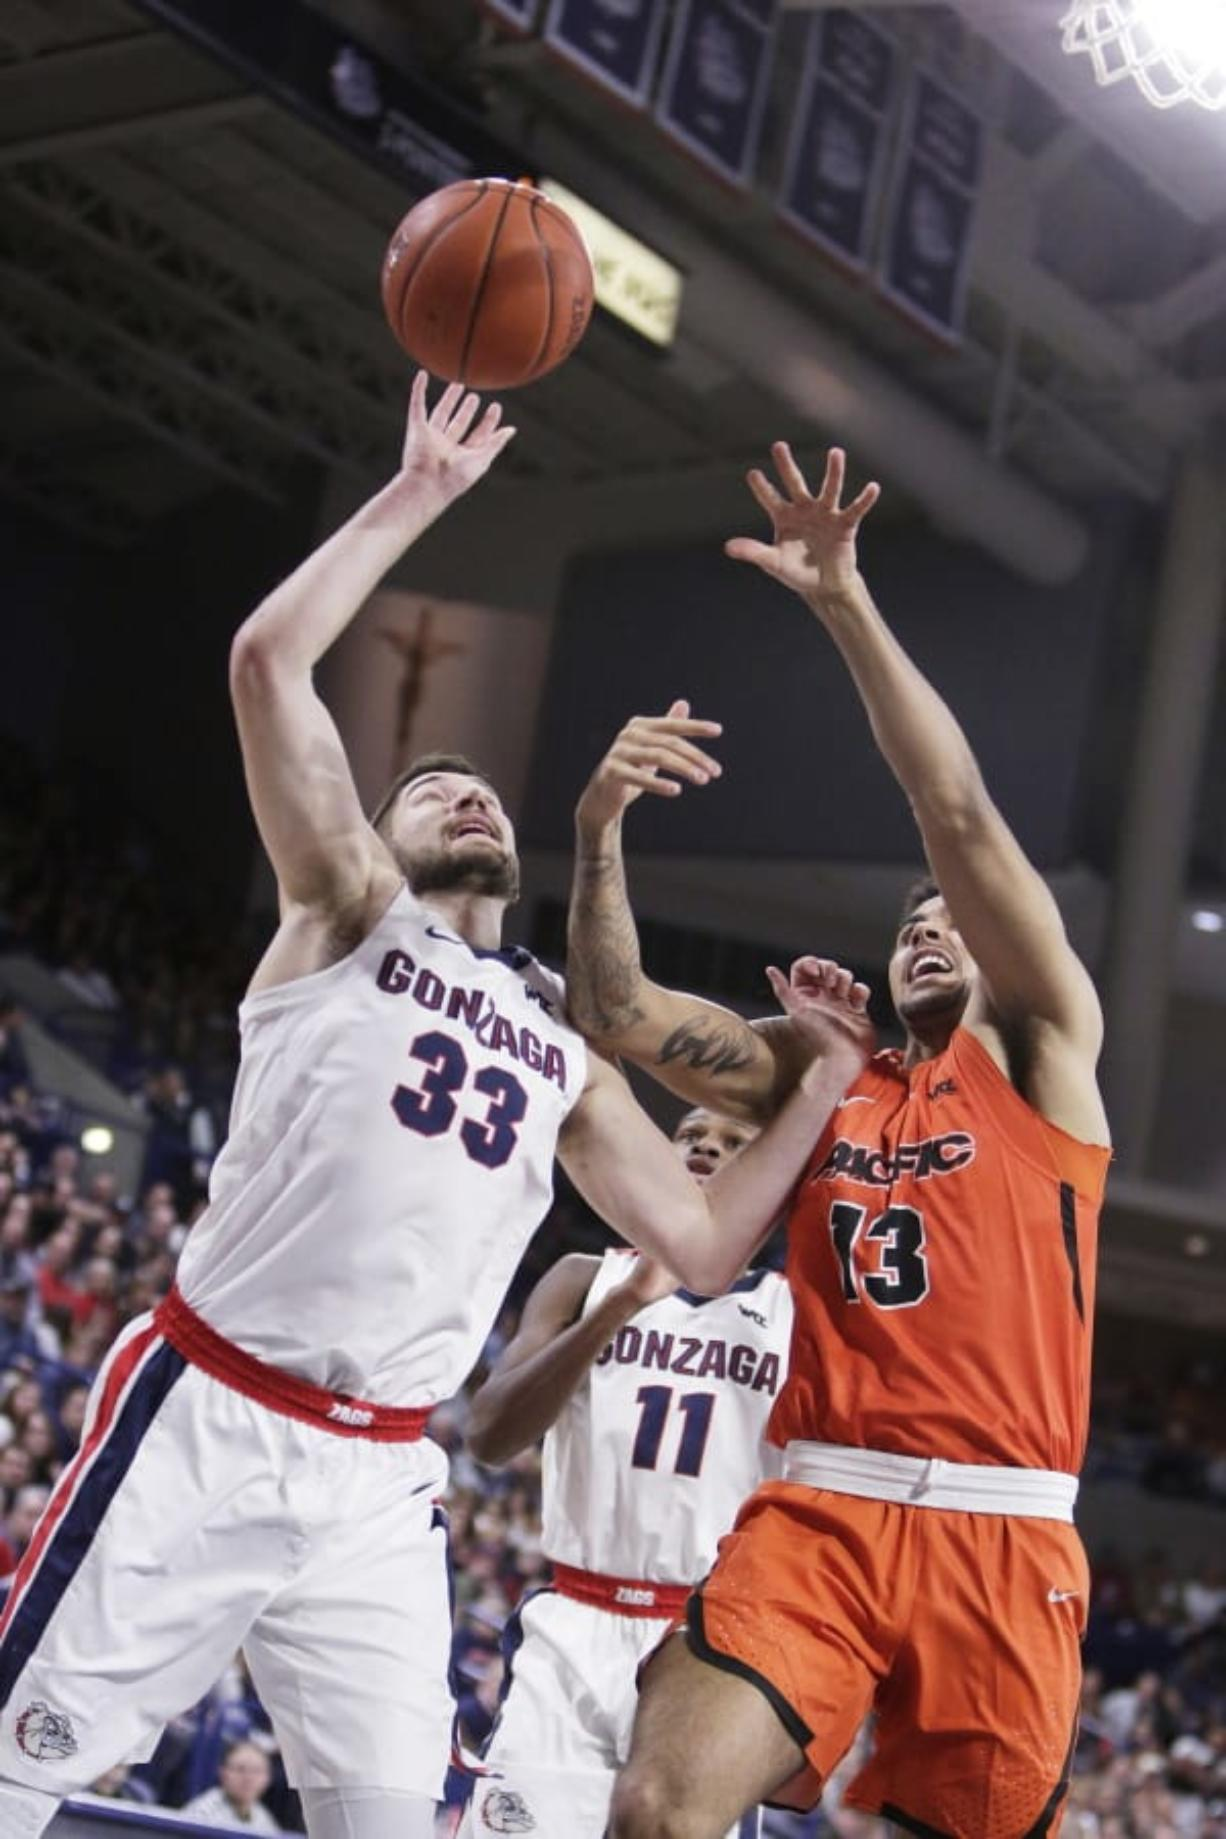 Gonzaga forward Killian Tillie (33) and Pacific forward Jeremiah Bailey (13) go after a rebound during the first half of an NCAA college basketball game in Spokane, Wash., Saturday, Jan. 25, 2020.